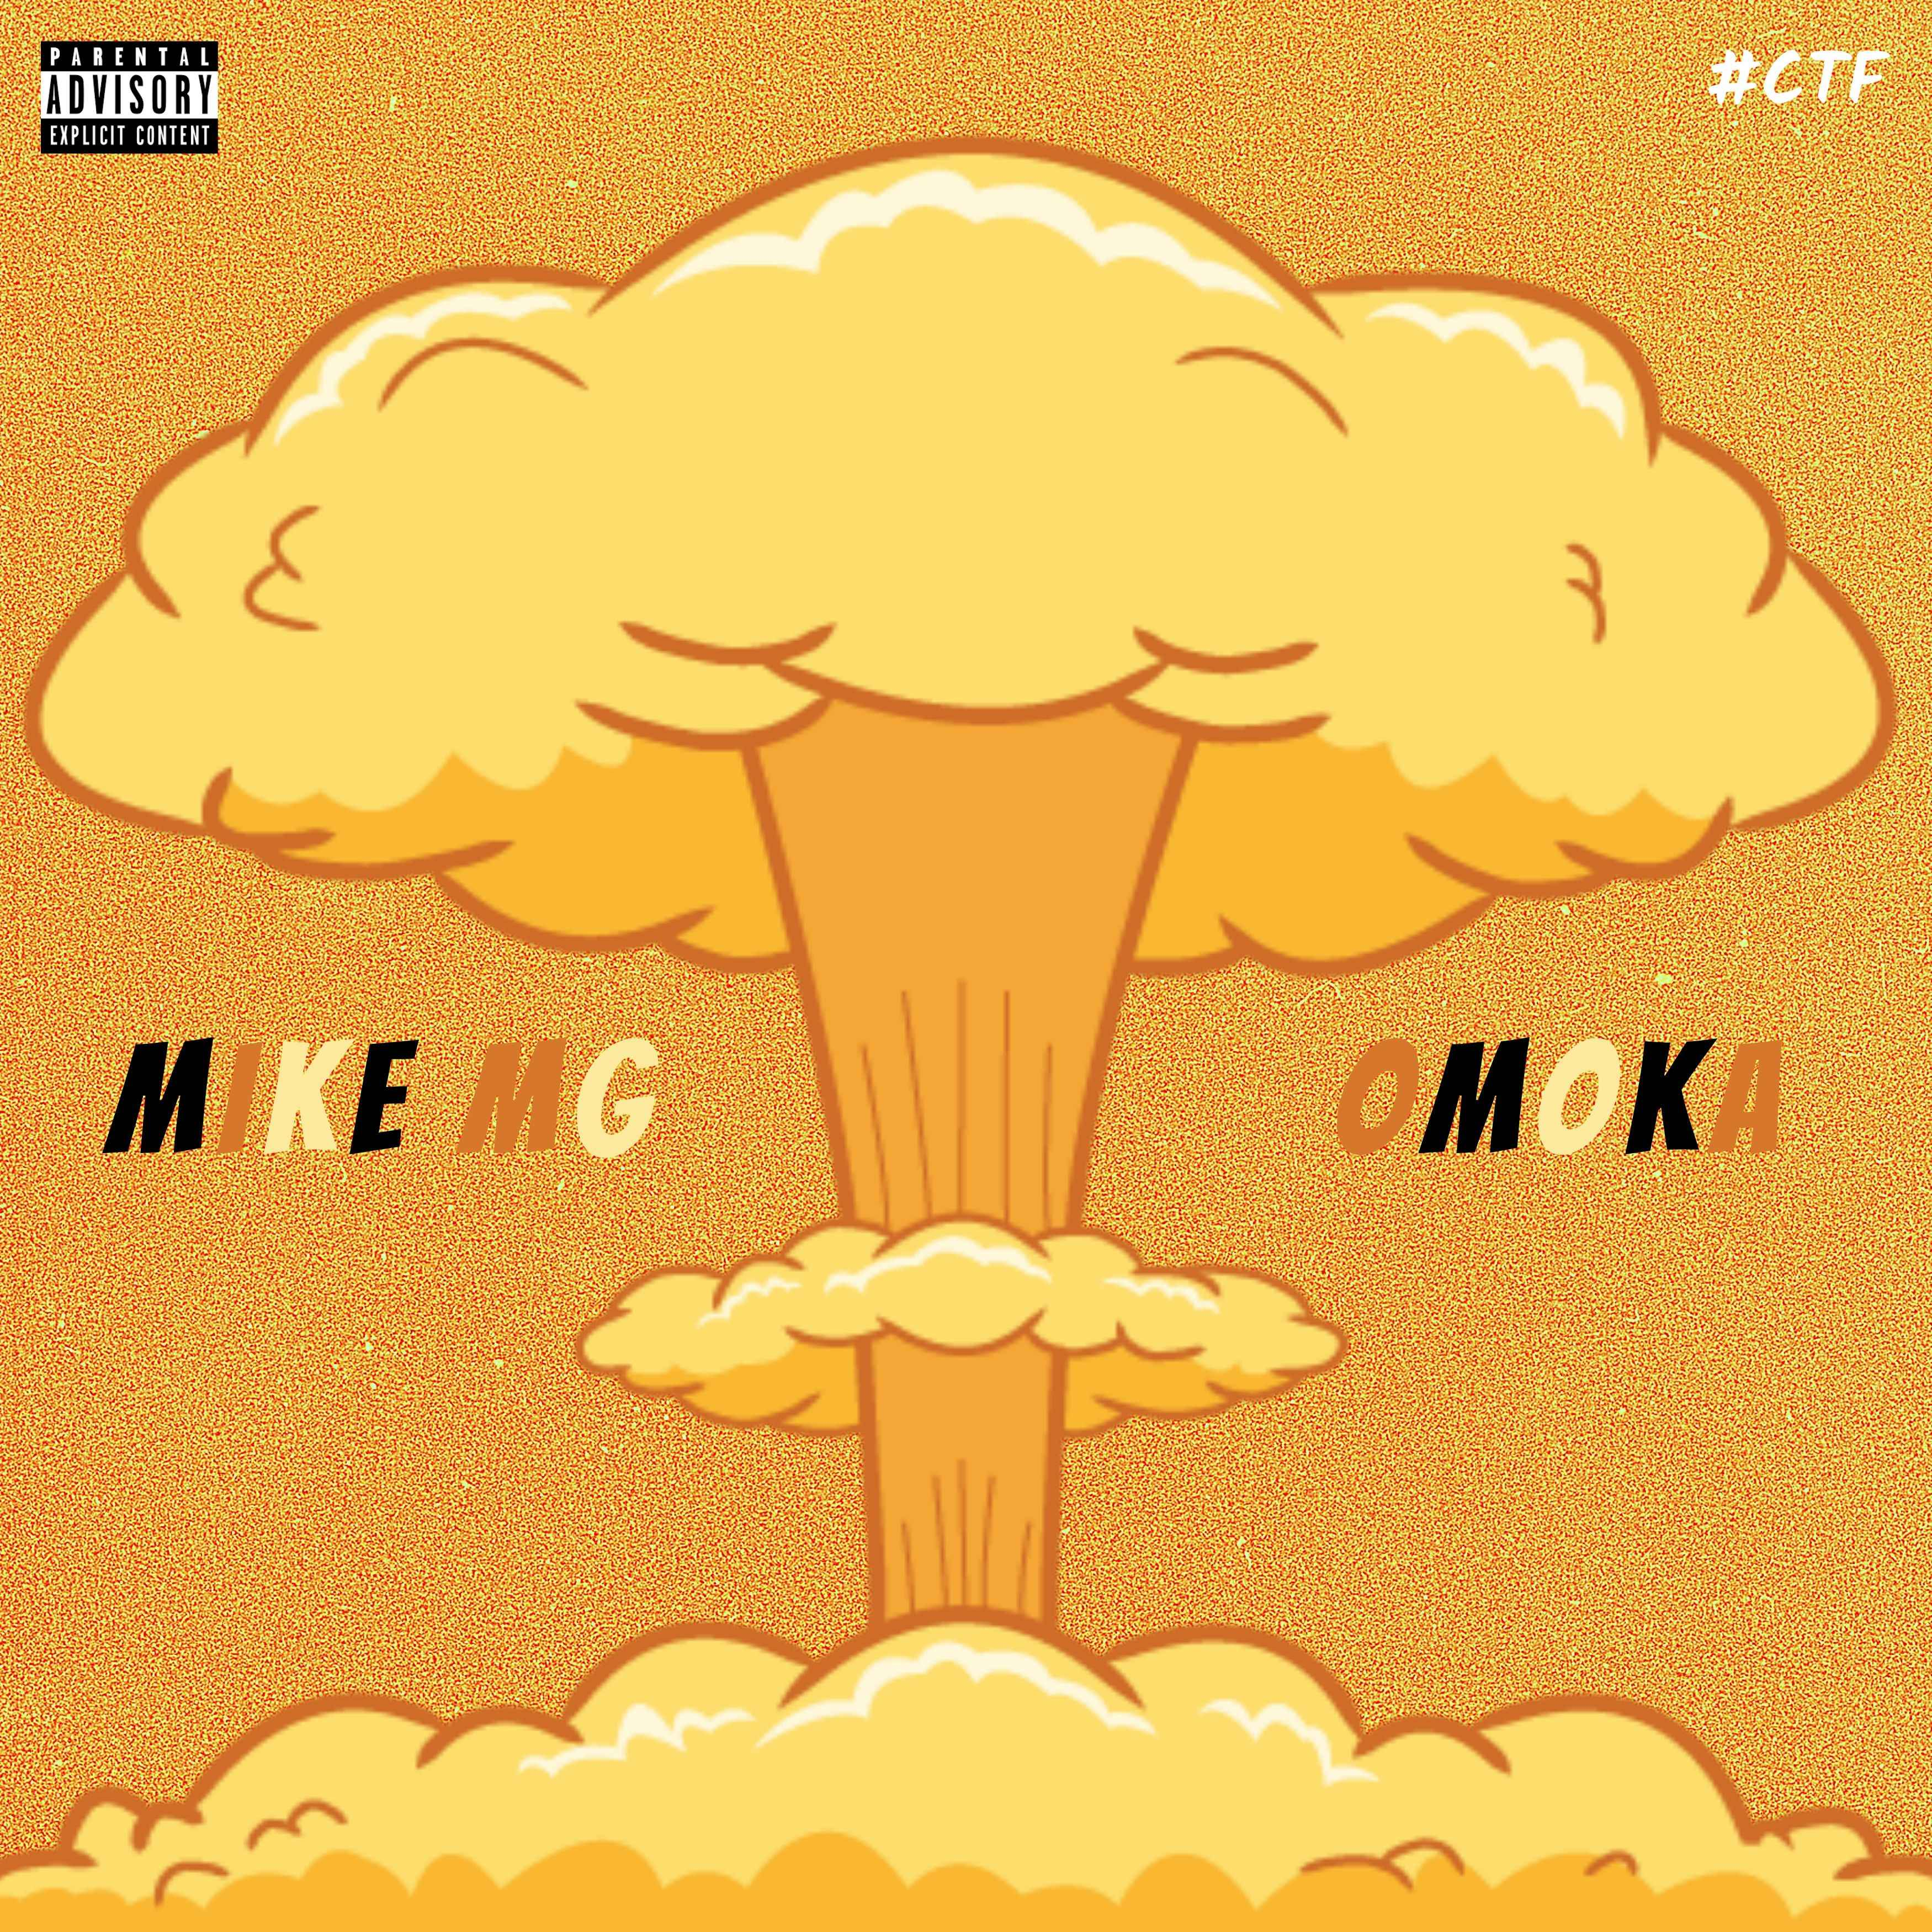 Mike MG - Omoka